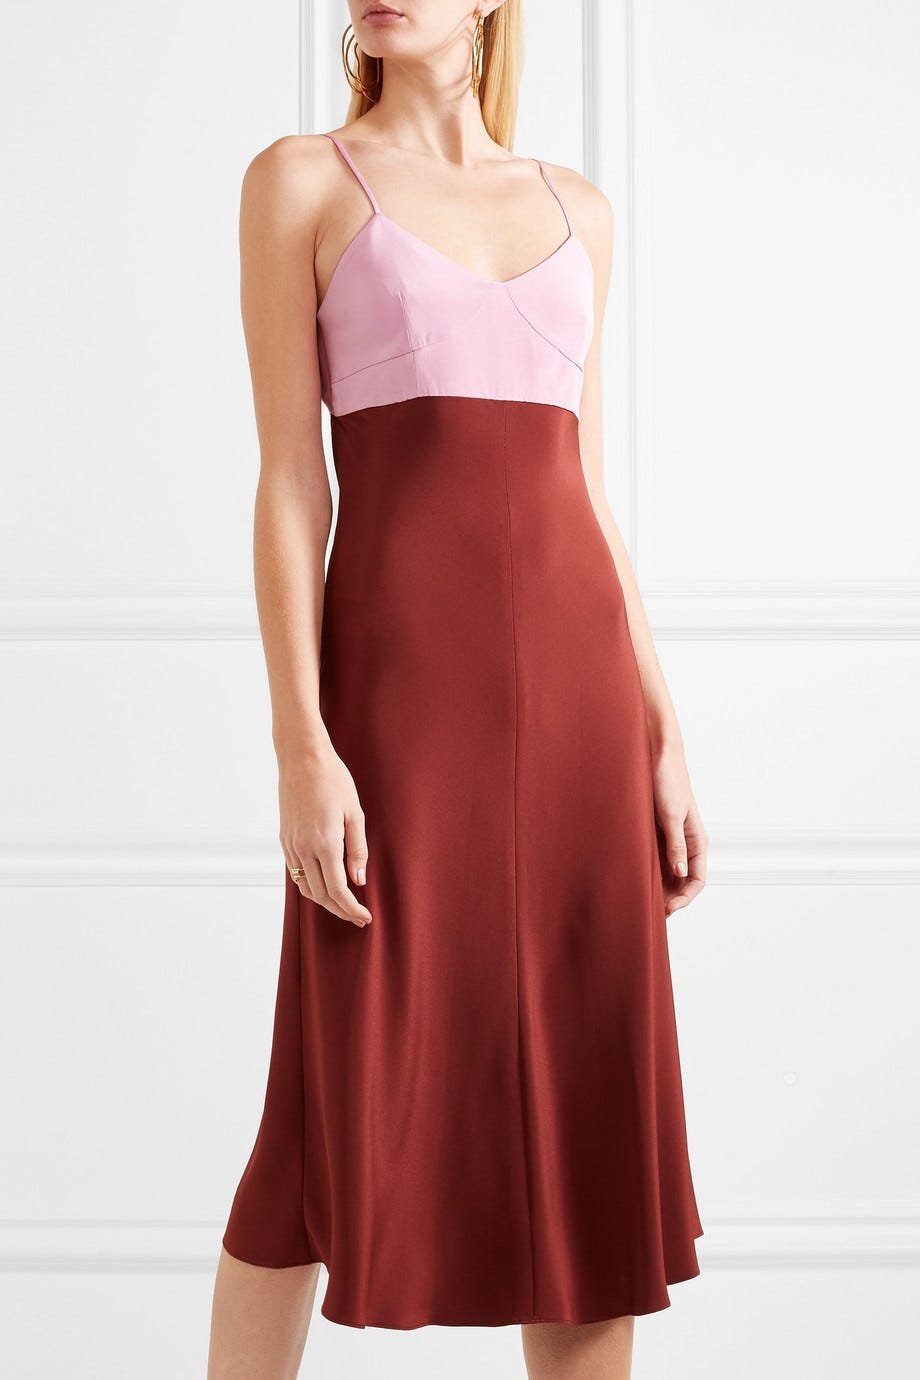 aac216bf5f4b Best Slip Dresses To Buy For Day And Night